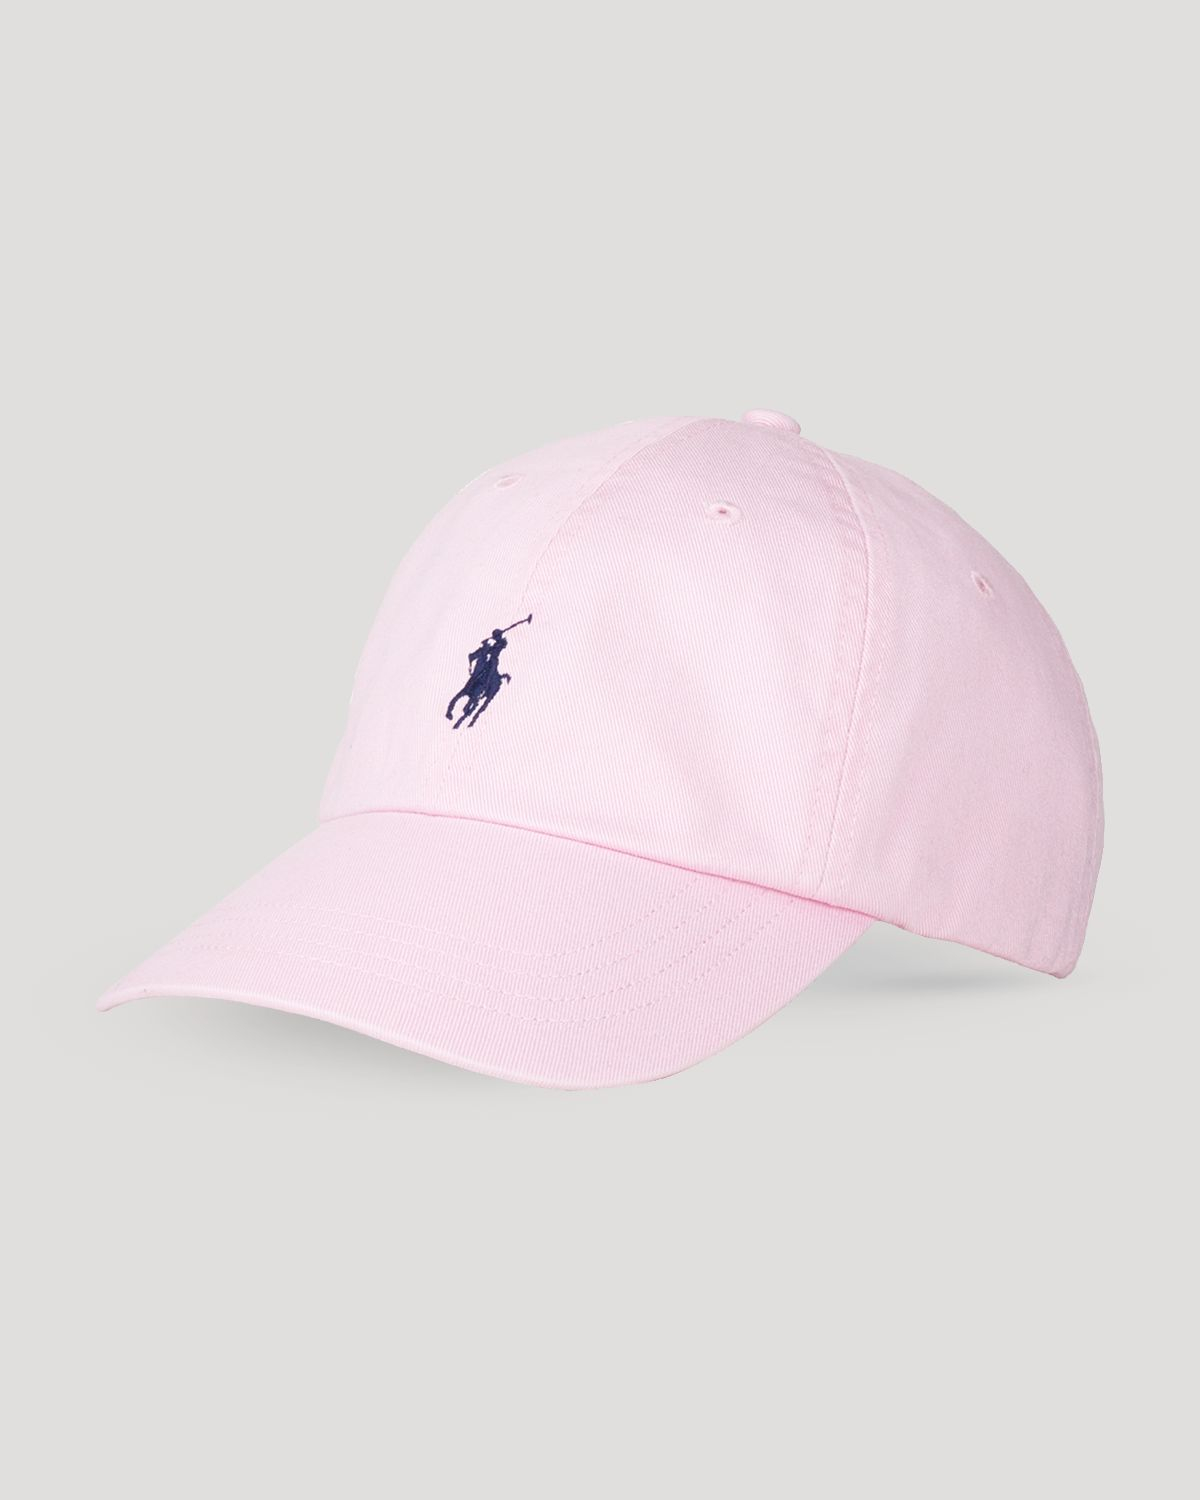 Lyst - Ralph Lauren Polo Classic Chino Sports Cap in Pink for Men 39050cab2c54